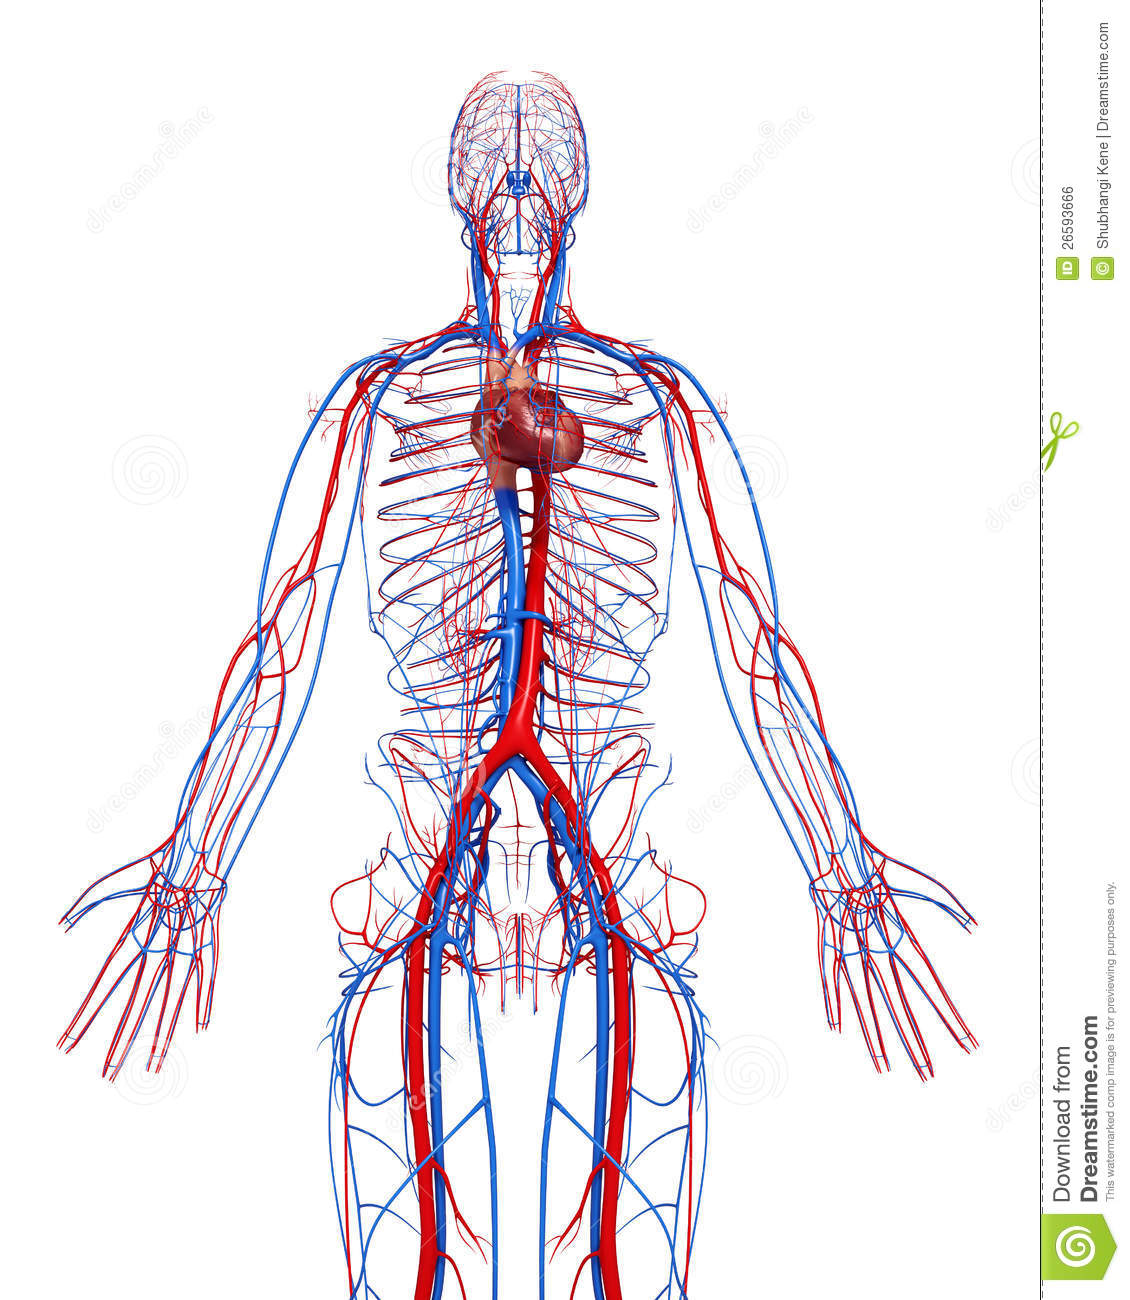 Circulatory System Of Male With Heart Royalty Free Image – Circulatory System Diagram Worksheet